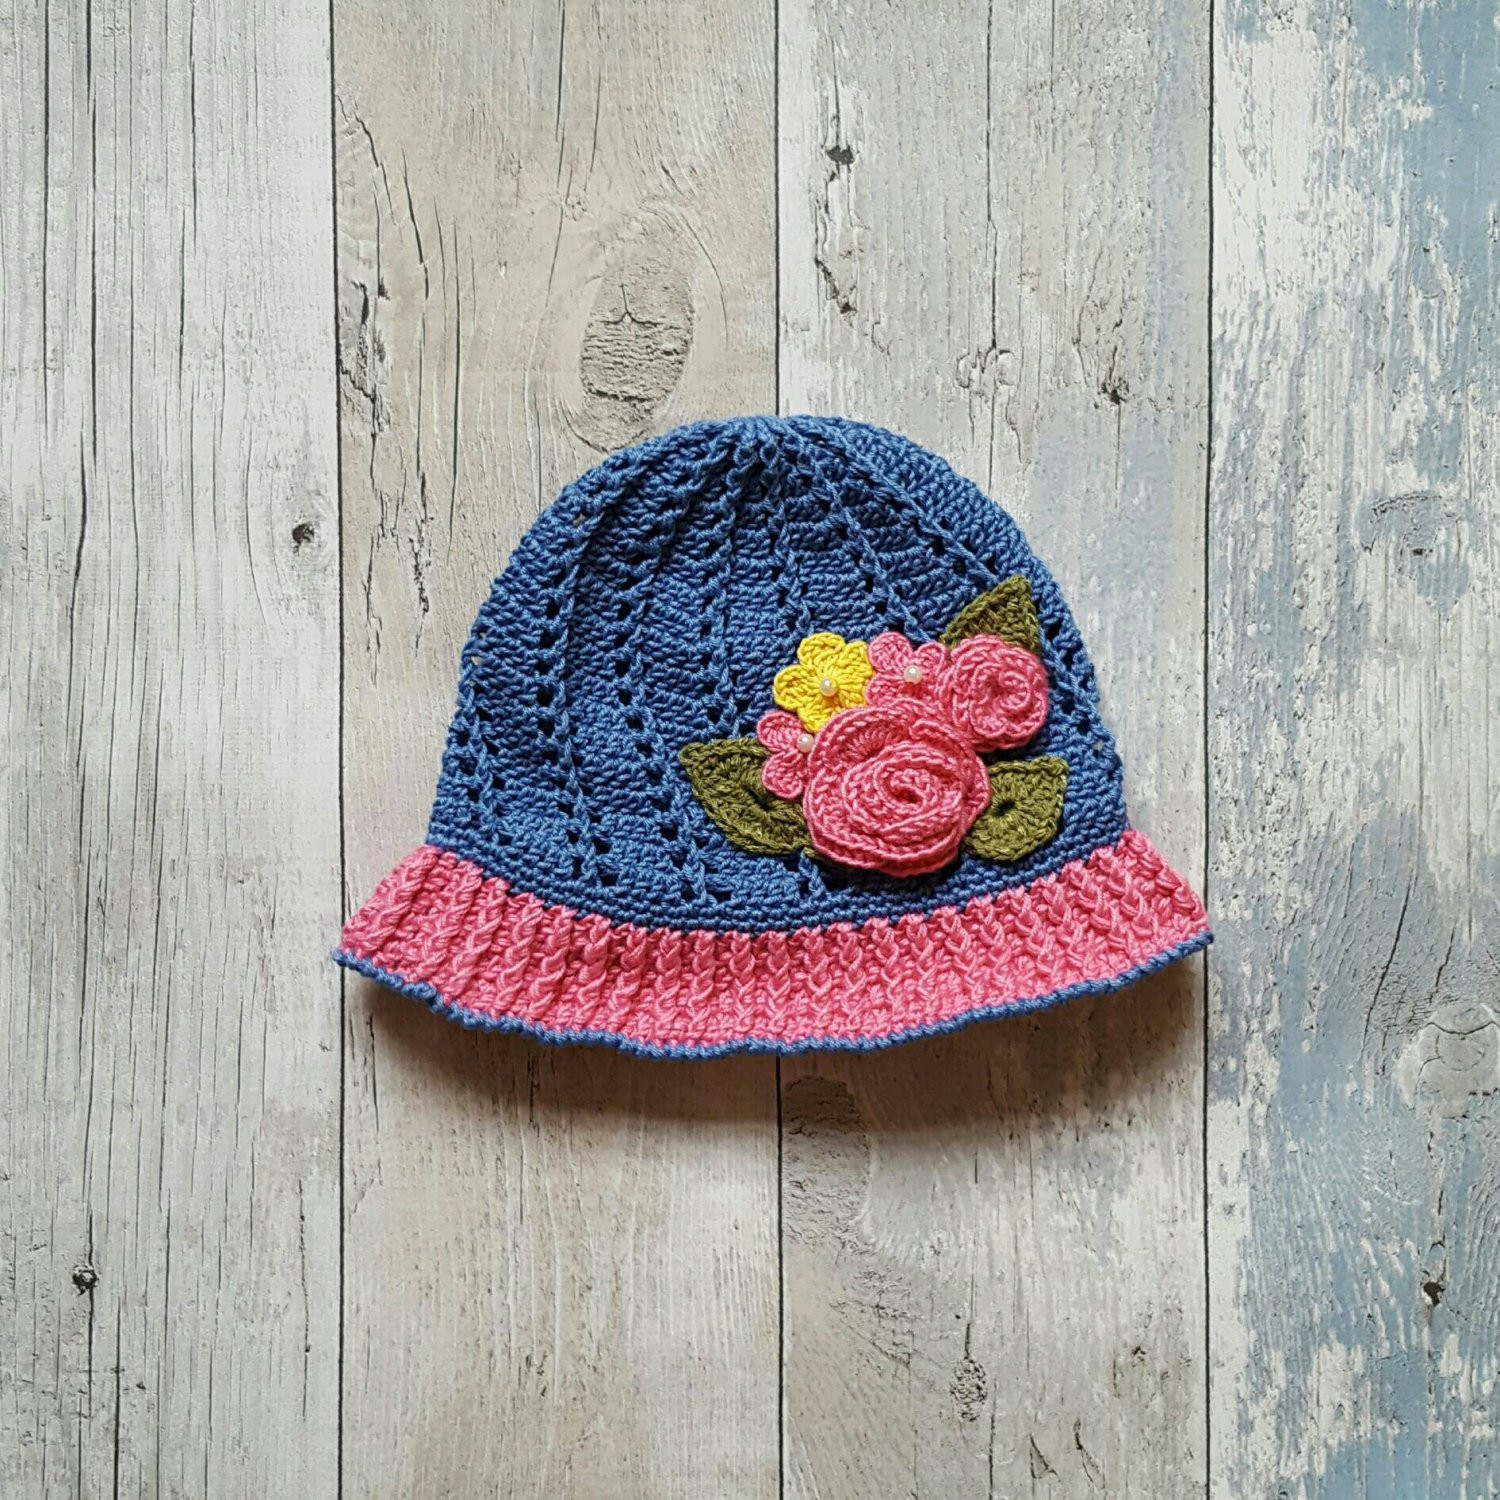 Crochet Girls Hats Inspirational Cloche Hat Crochet Hat Little Girl S Hat Summer Hat Of New 46 Ideas Crochet Girls Hats